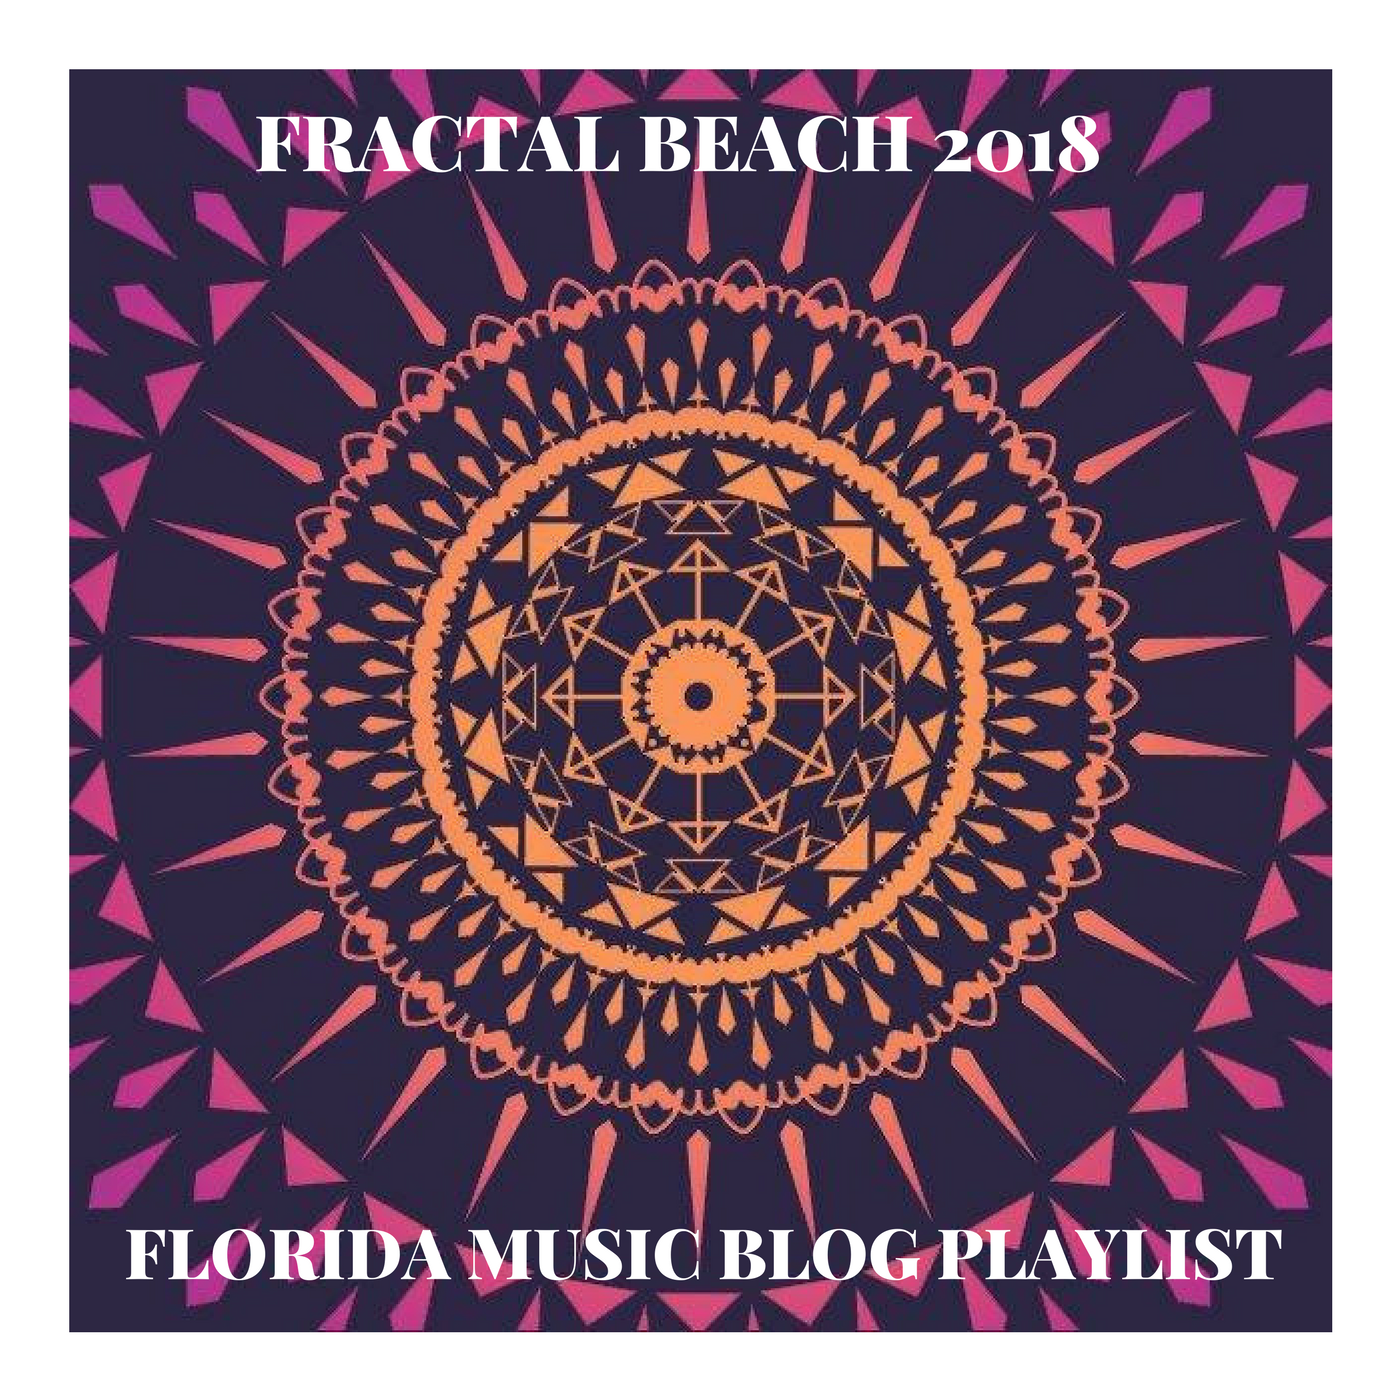 Fractal Beach 2018 Playlist